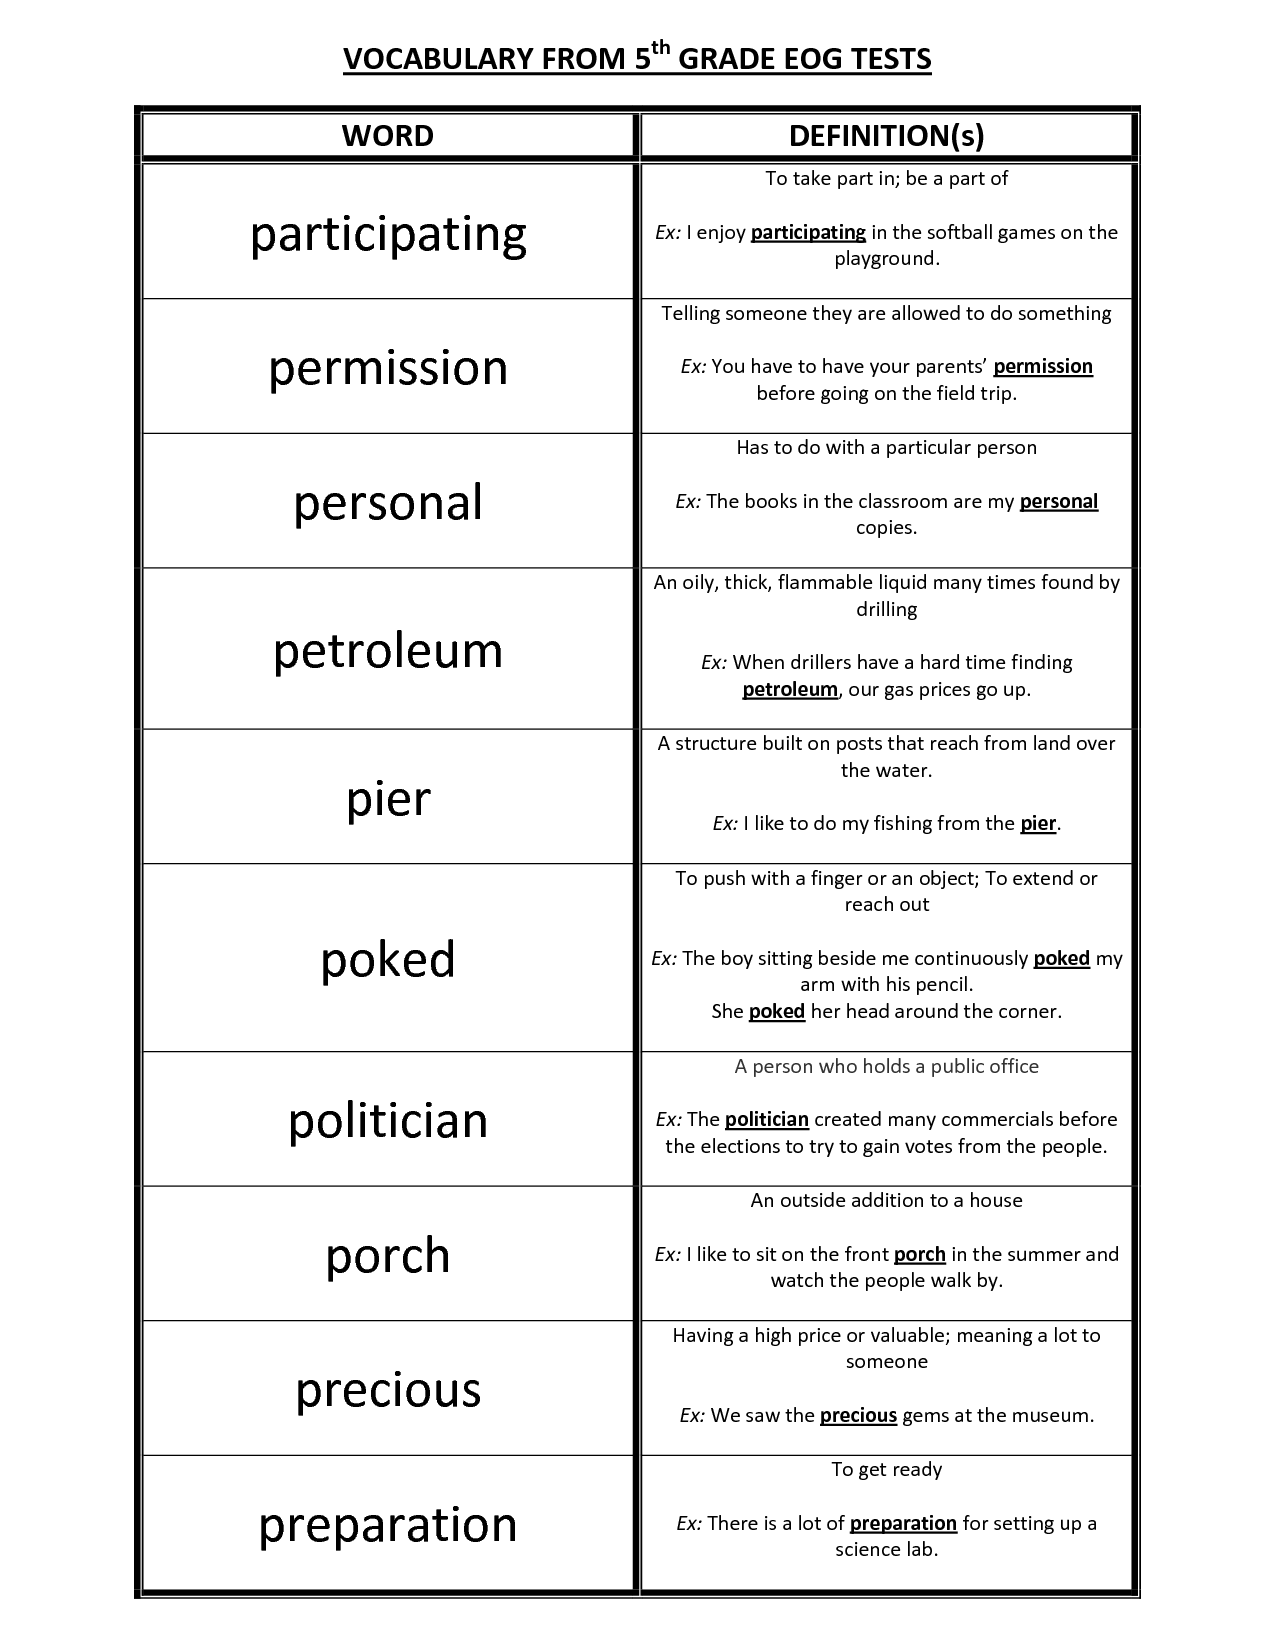 5th Grade Science Vocabulary Words In